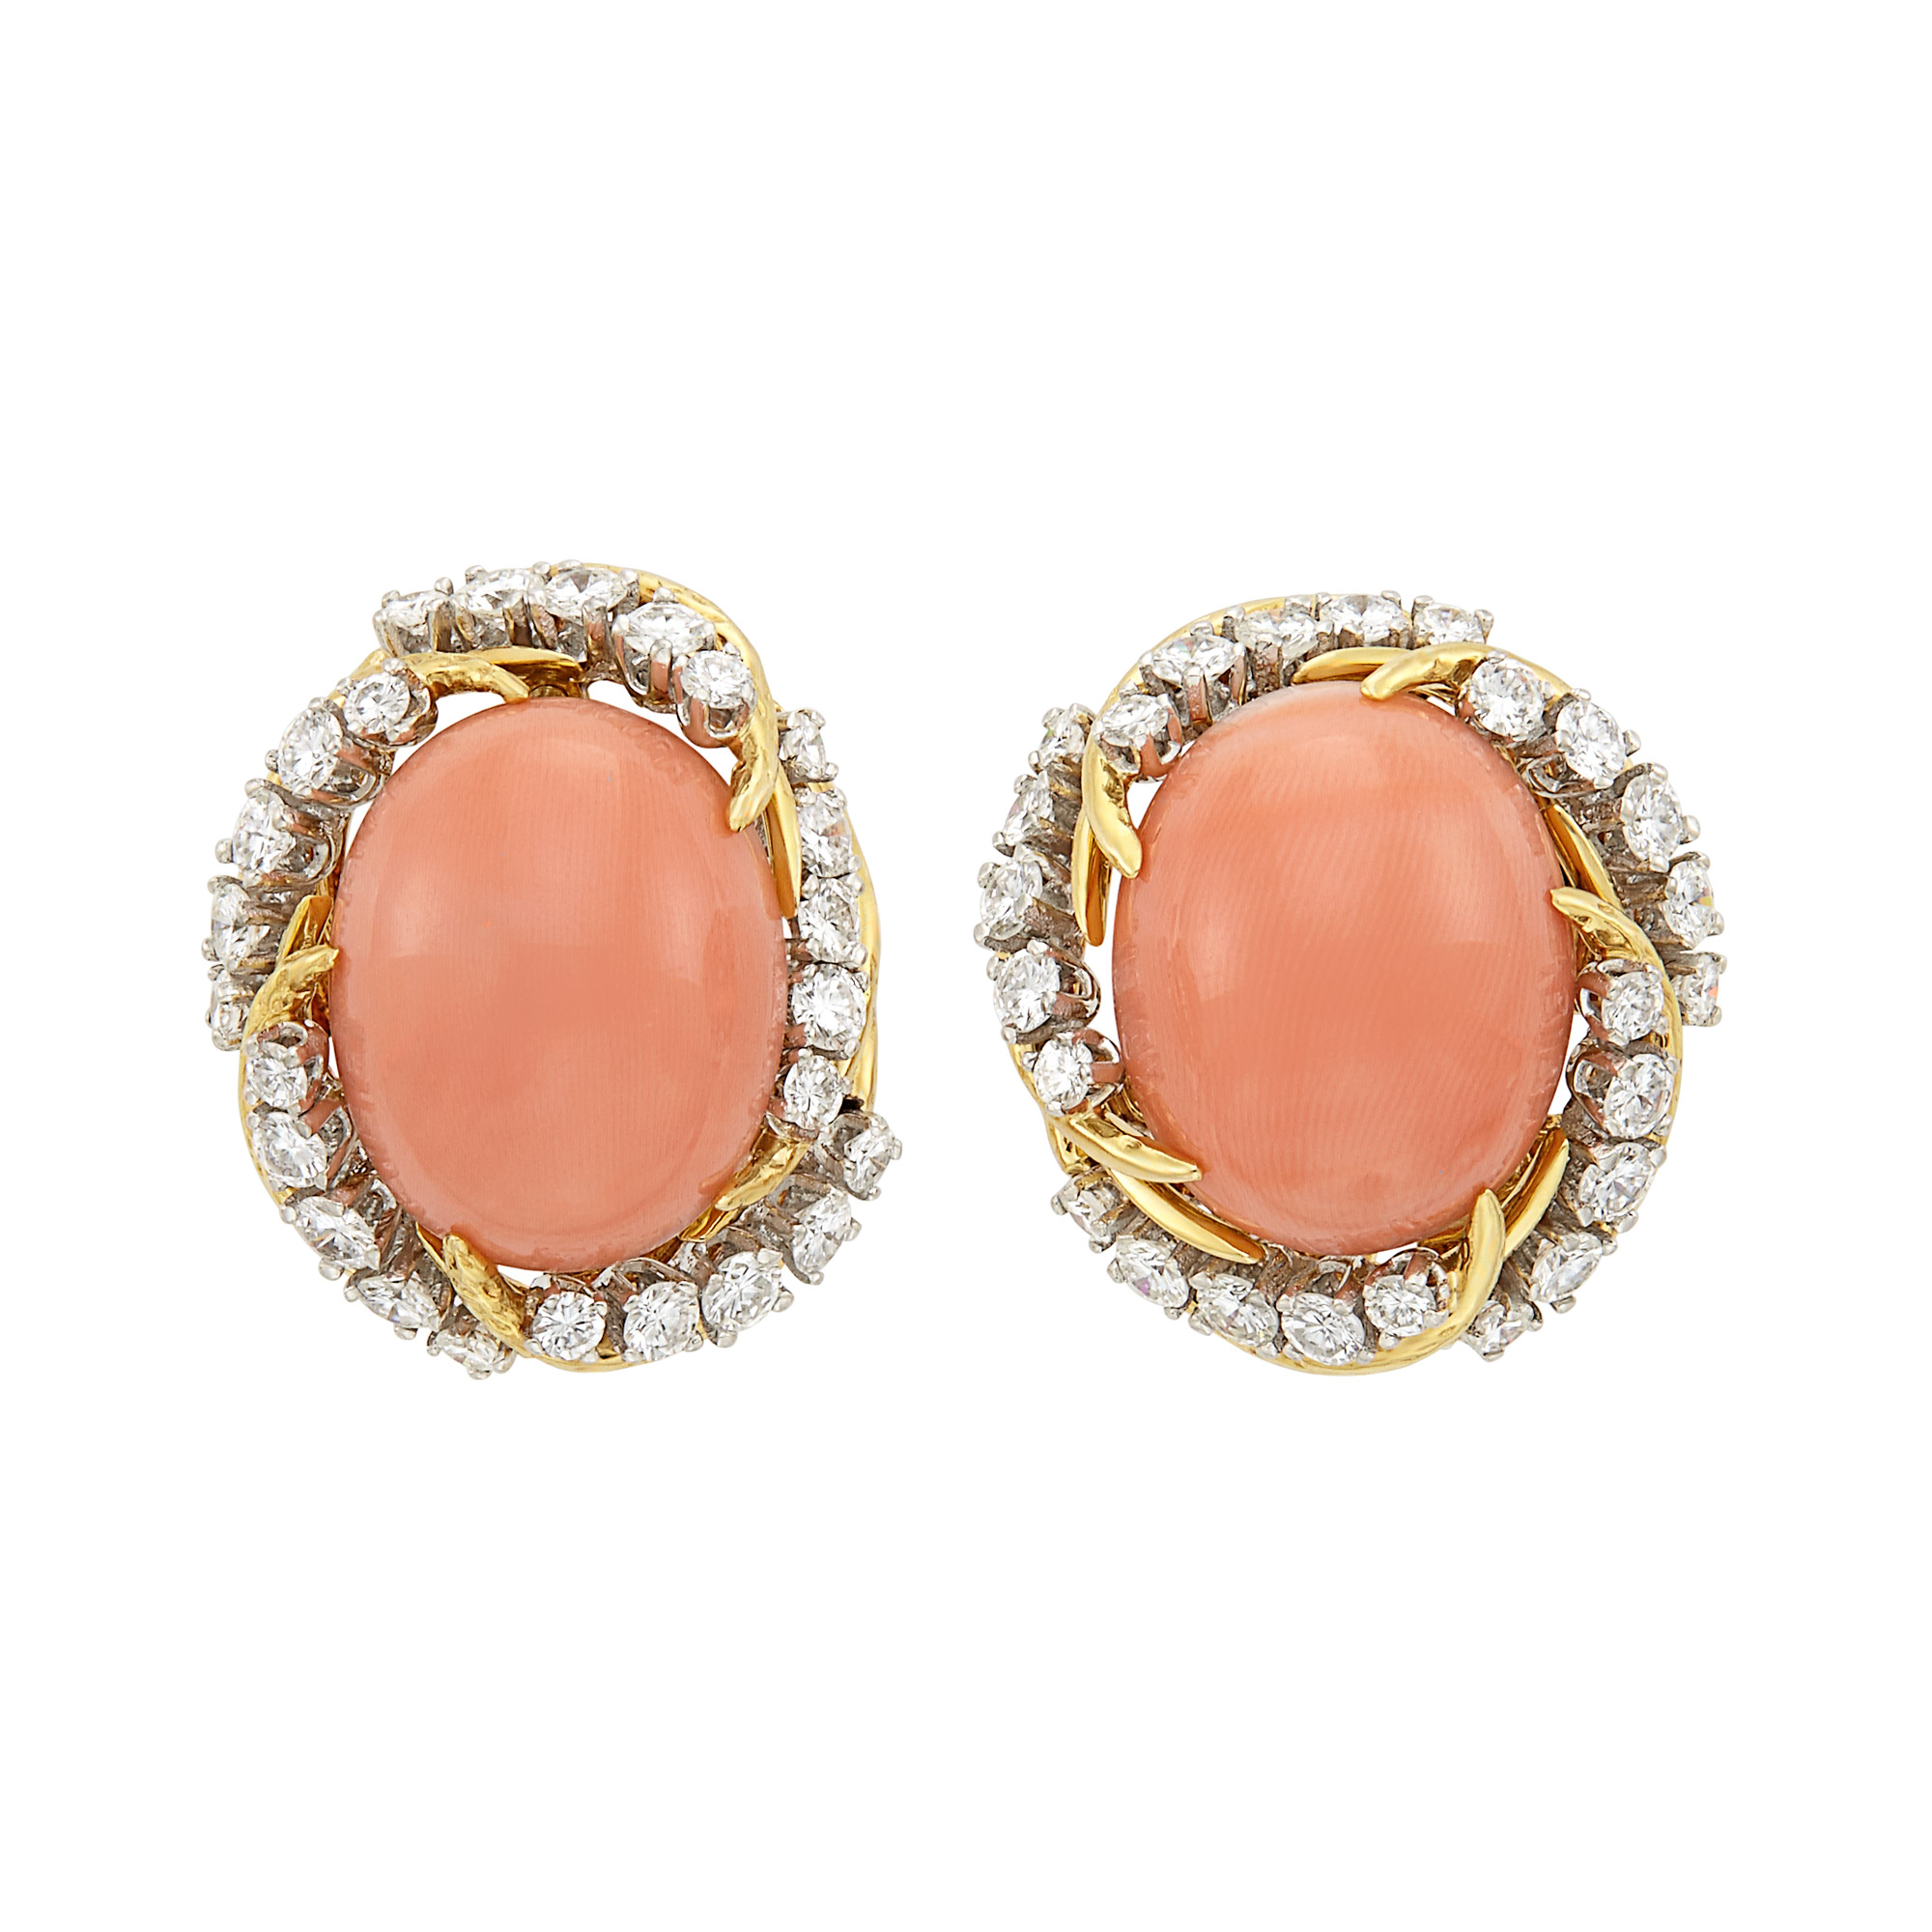 Lot image - Pair of Gold, Platinum, Coral and Diamond Earclips, France